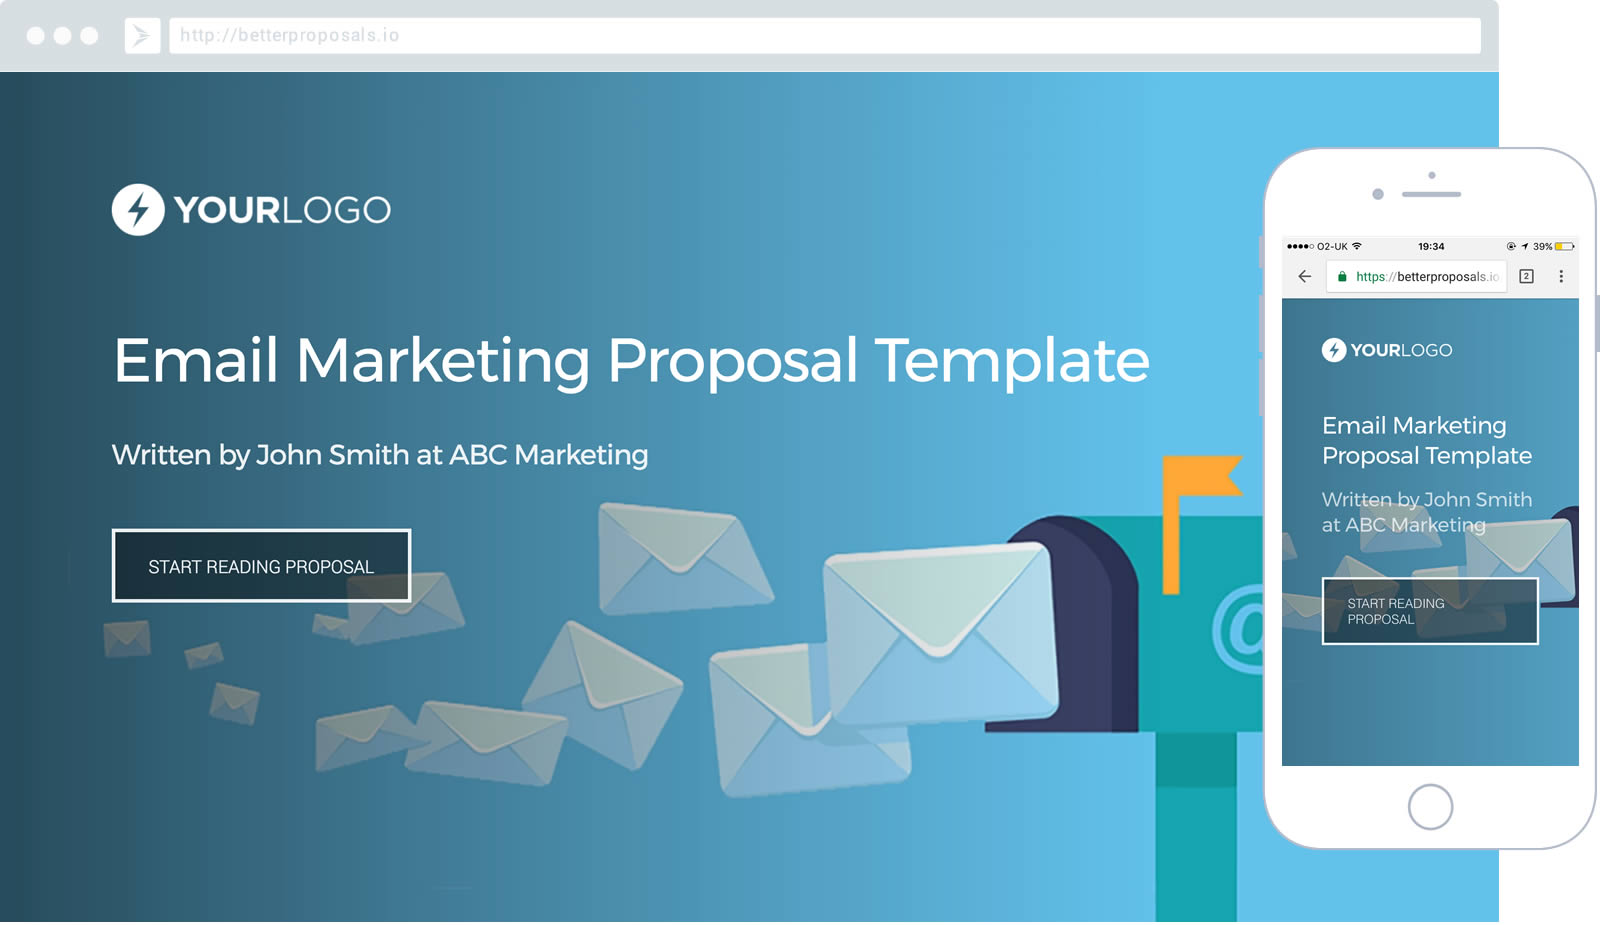 proposal for marketing services template - free email marketing proposal template better proposals